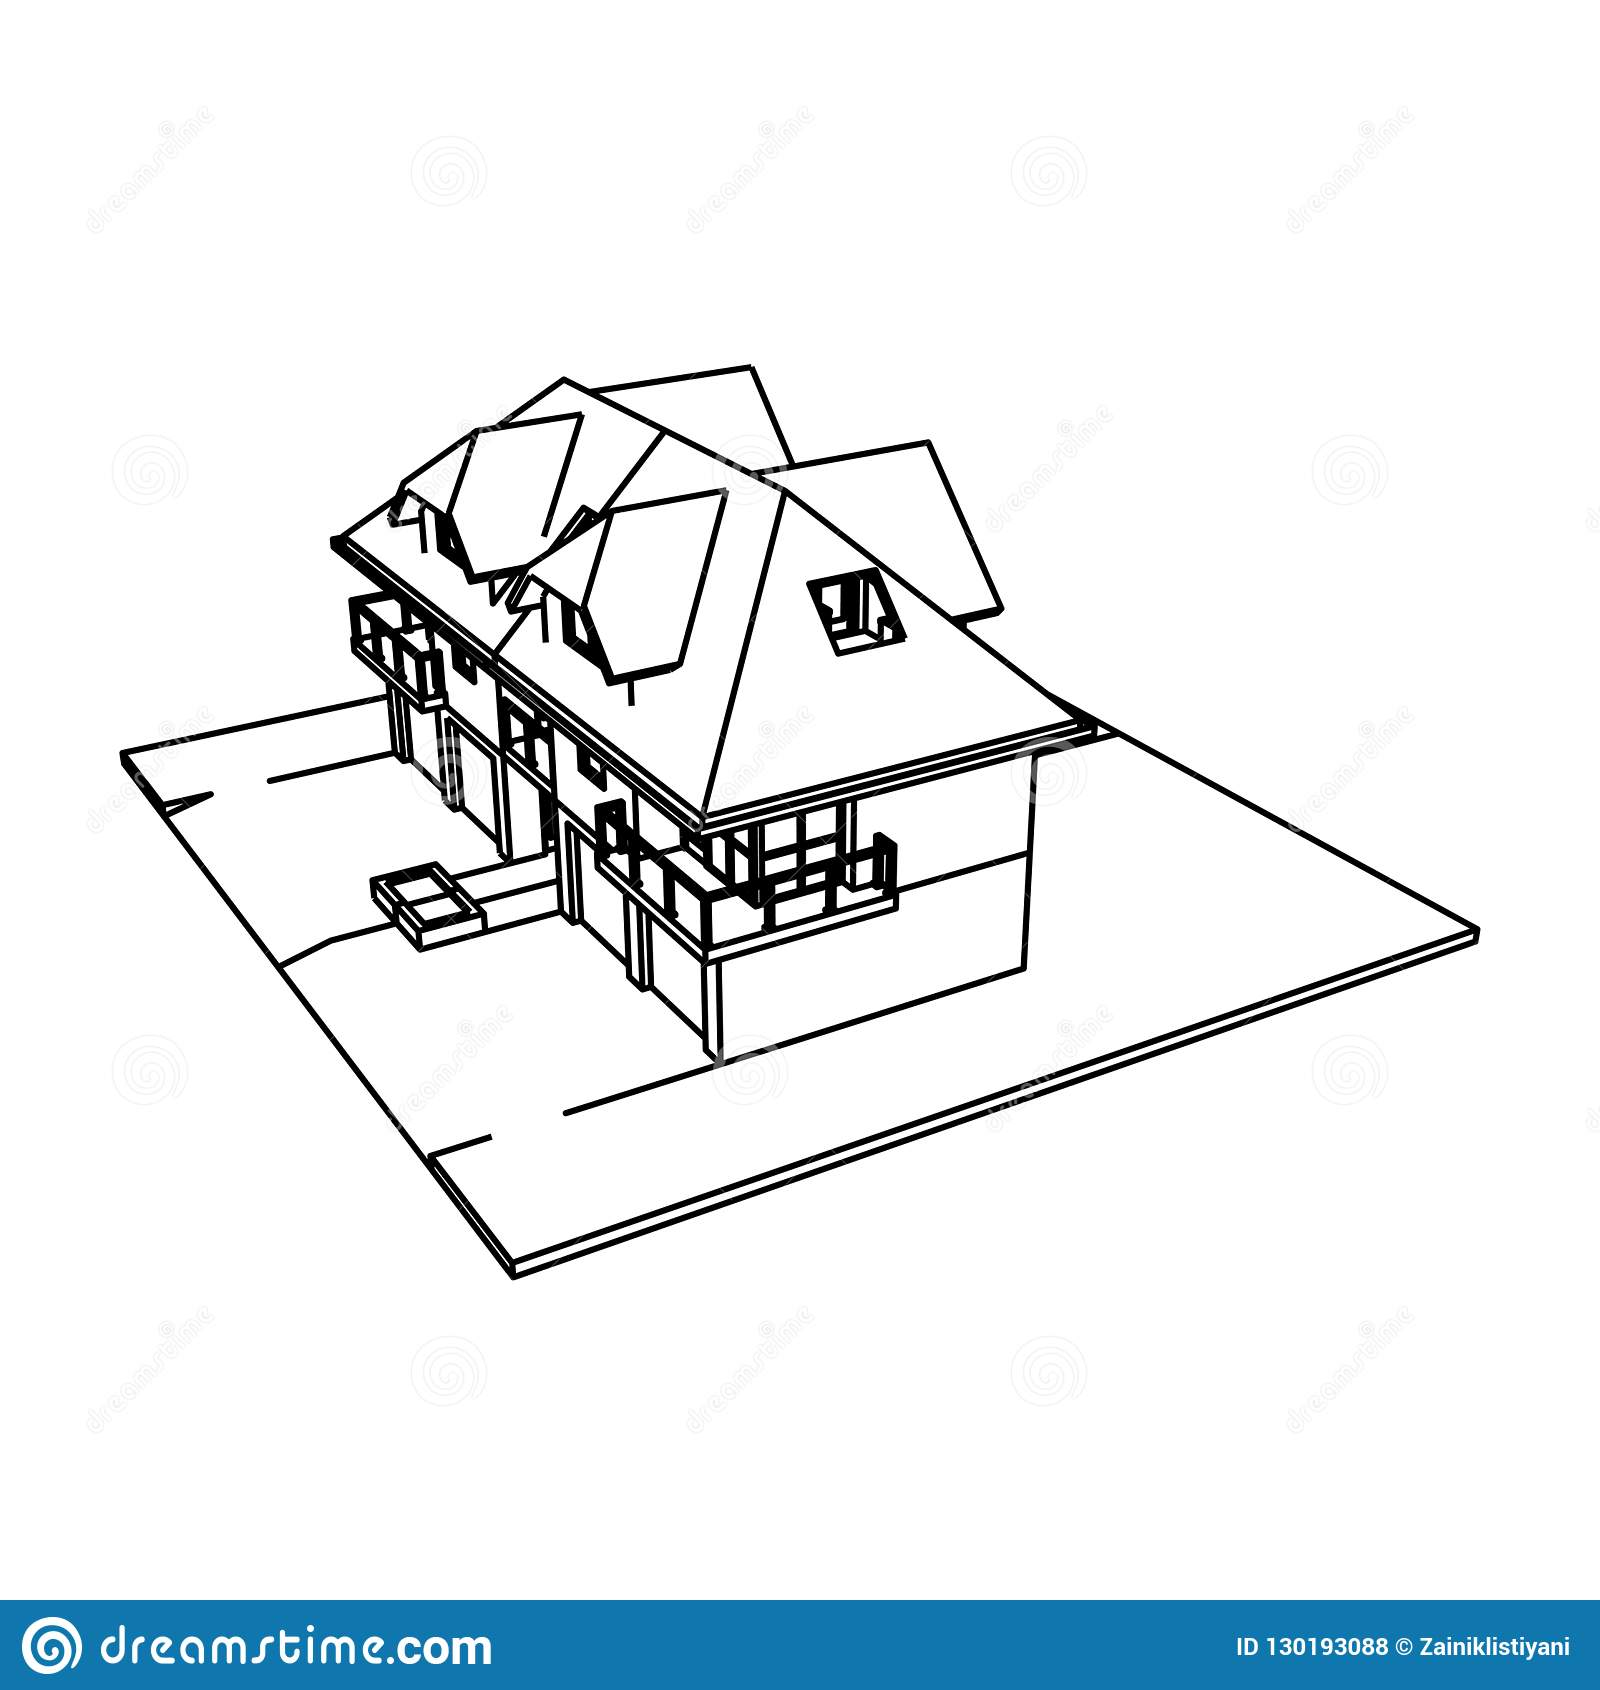 4 Unit Apartment Building With 4 Garages Stock Illustration ...